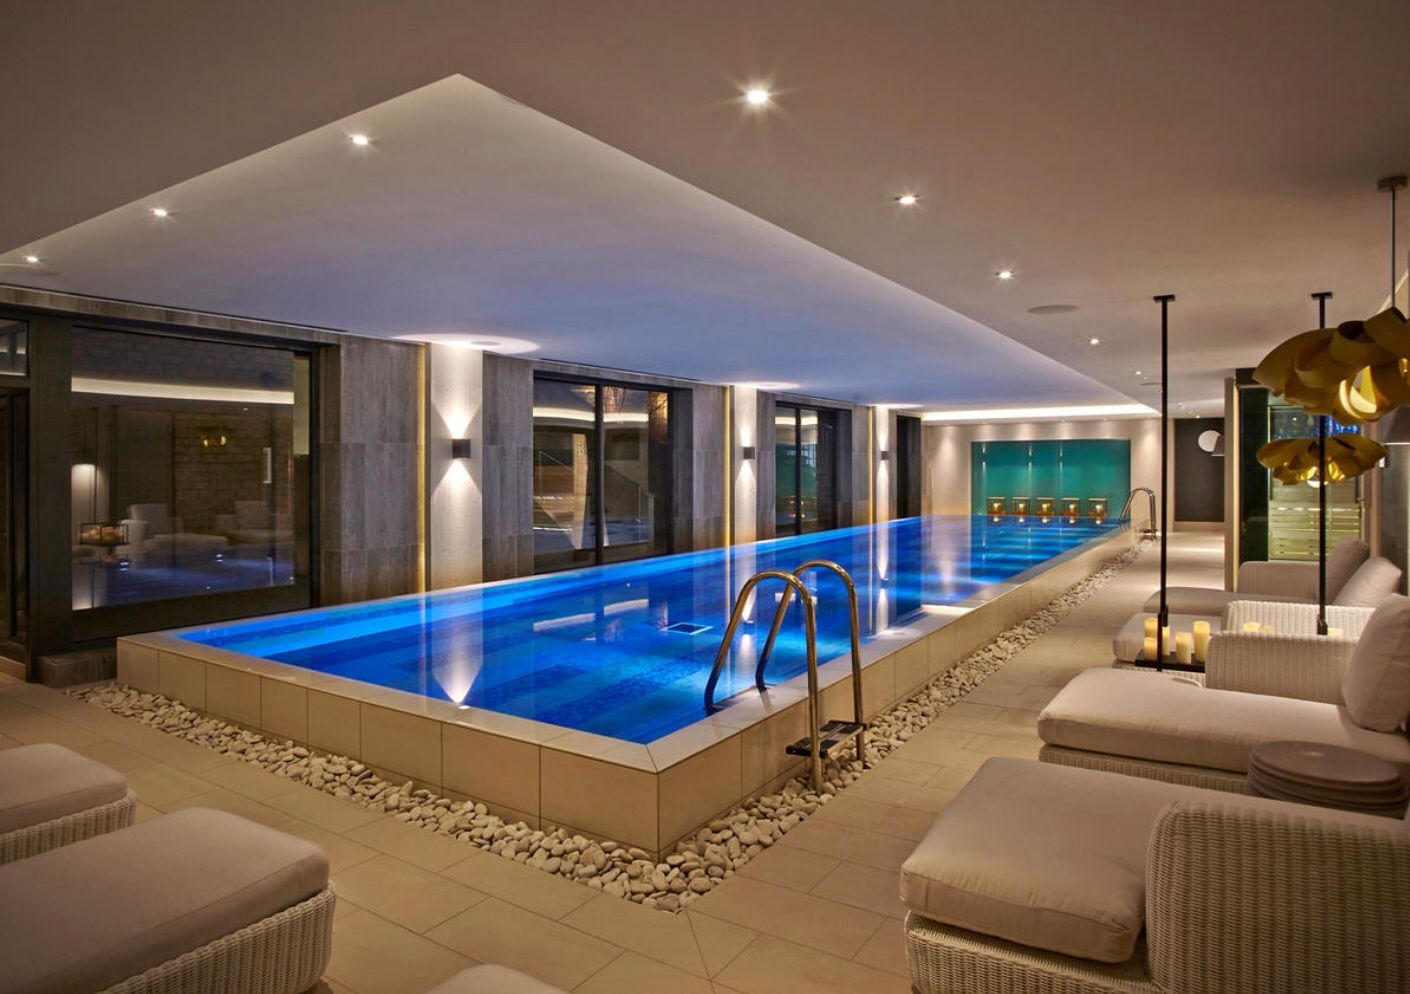 11 Of The Best Uk Spa Hotels For A Romantic Weekend Away Indoor Pool Design Pool Houses Indoor Swimming Pools